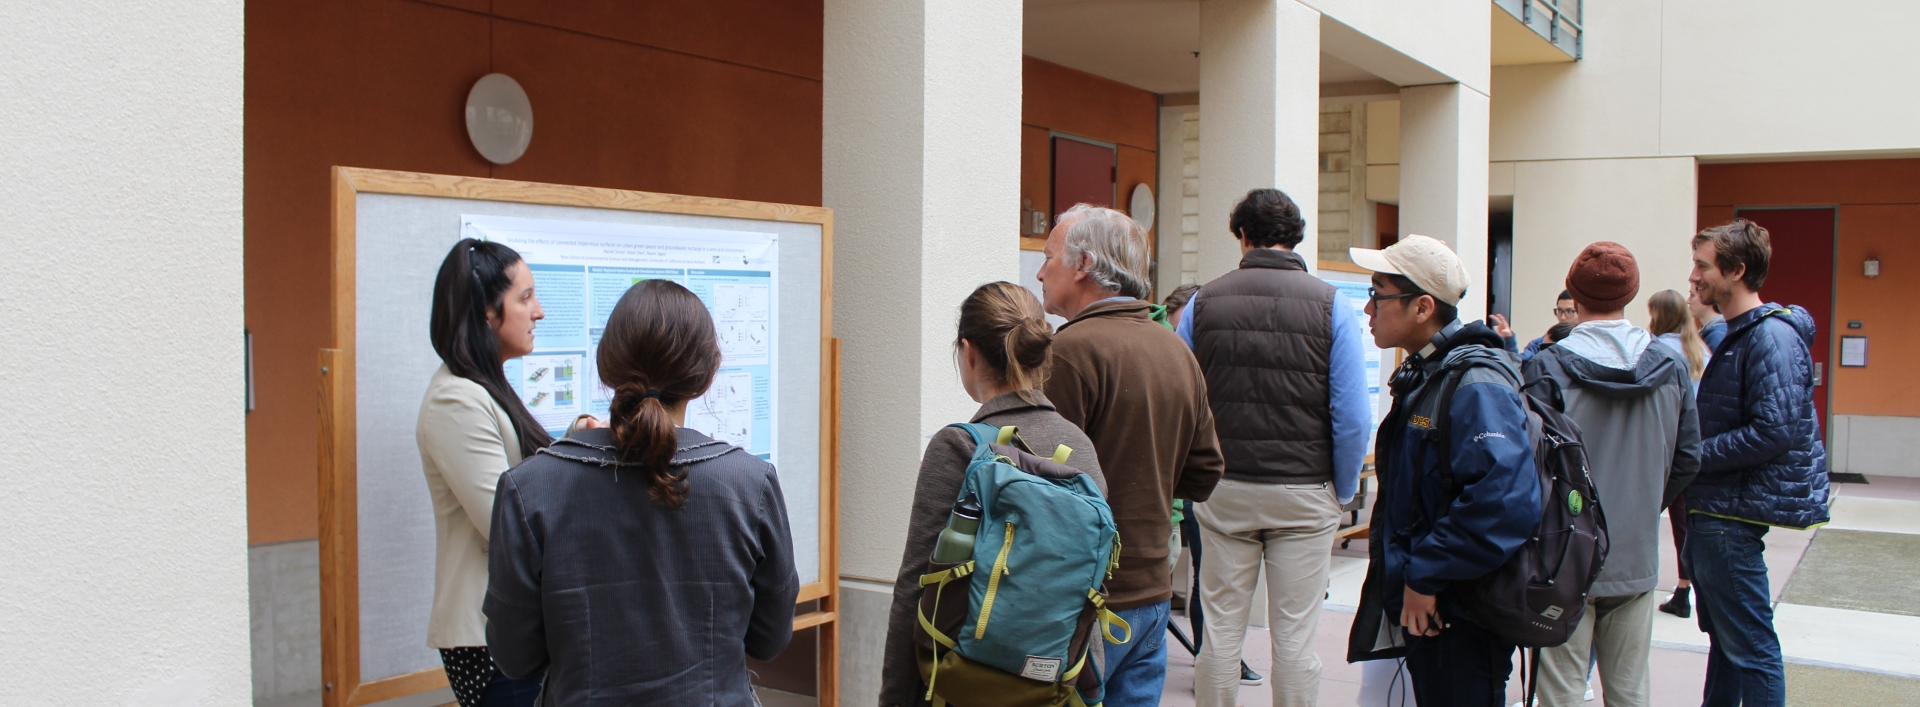 A student presents a poster in the Bren courtyard